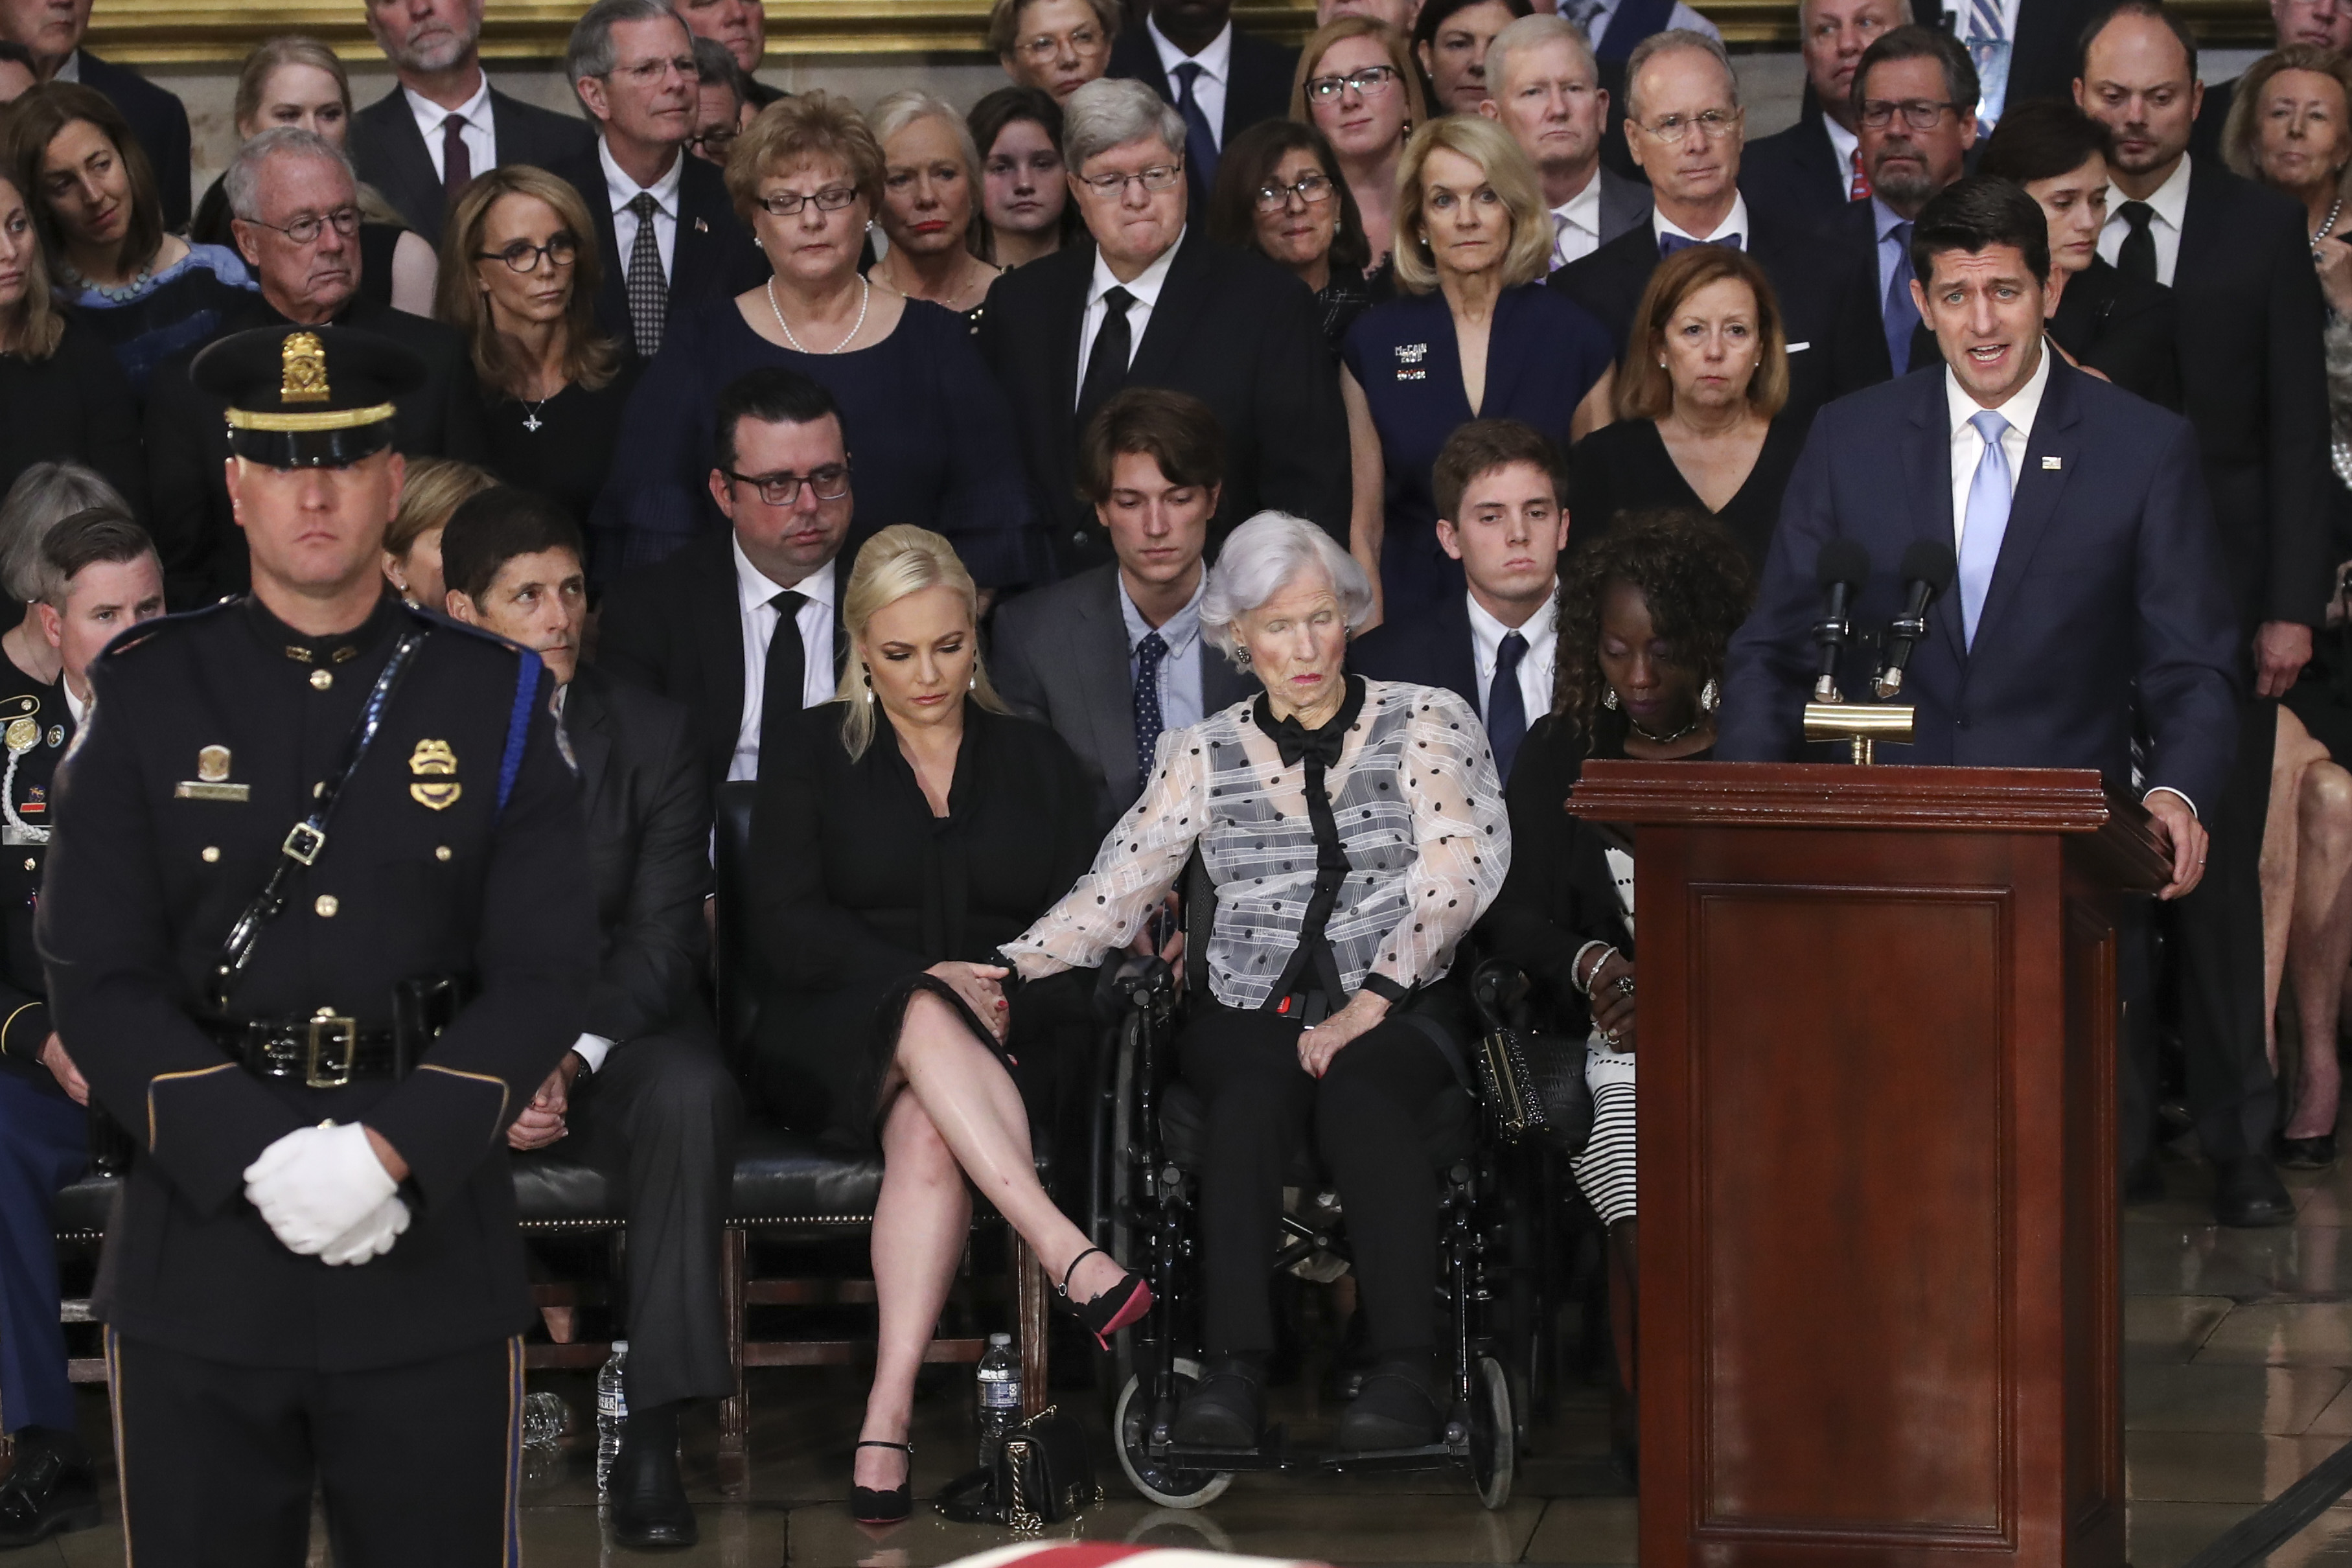 (L-R) Meghan McCain is comforted by her grandmother Roberta McCain as Speaker of the House Paul Ryan (R-WI) speaks during a ceremony for the late-Sen. John McCain (R-AZ) in the Rotunda of the U.S. Capitol, August 31, 2018 in Washington, DC. (Getty Images)